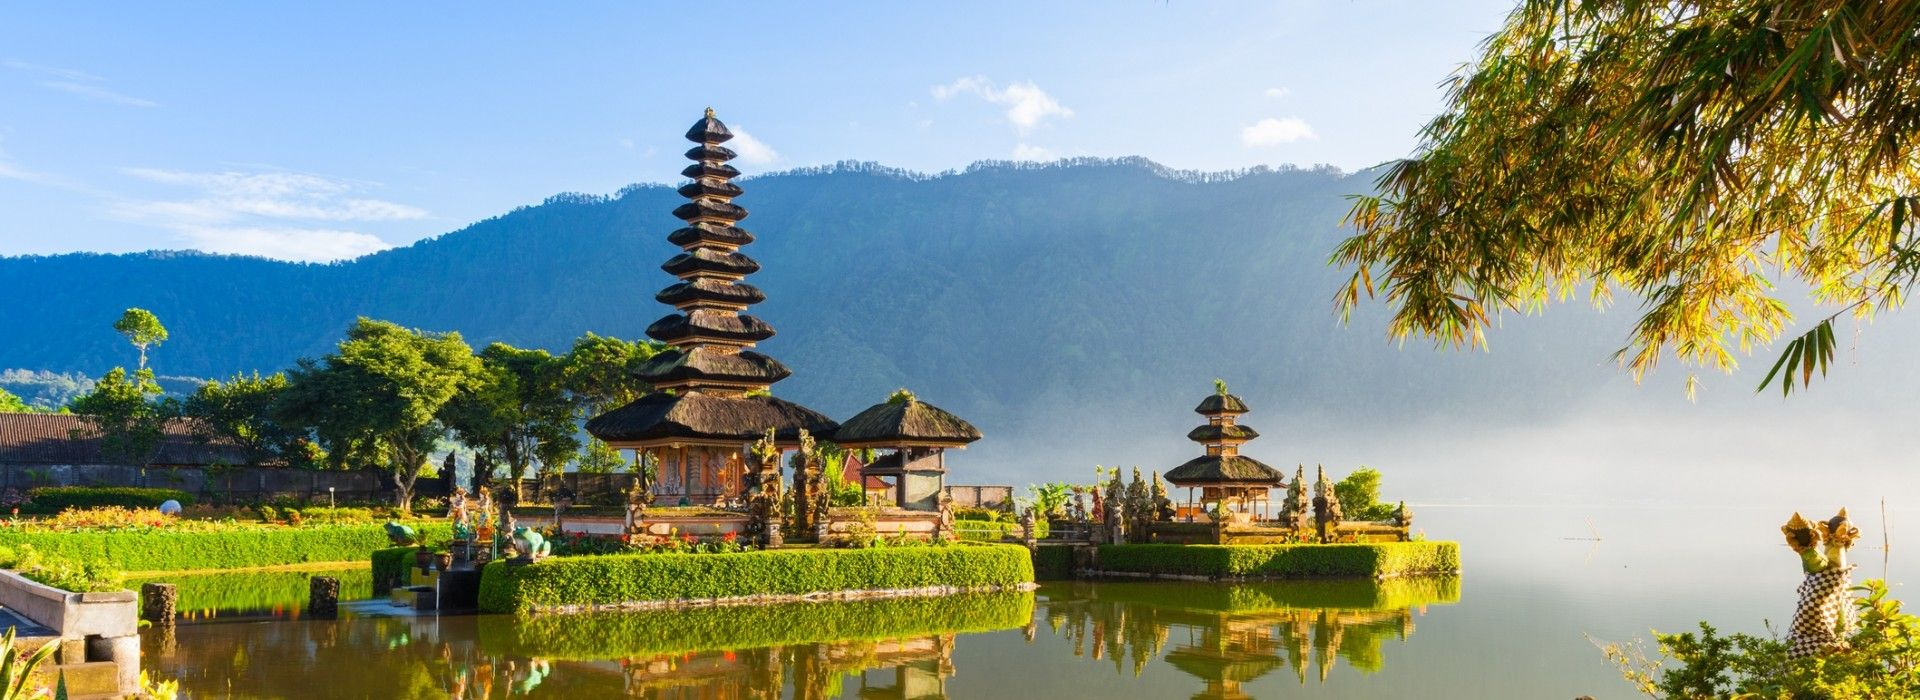 Countryside and village visits Tours in Bali